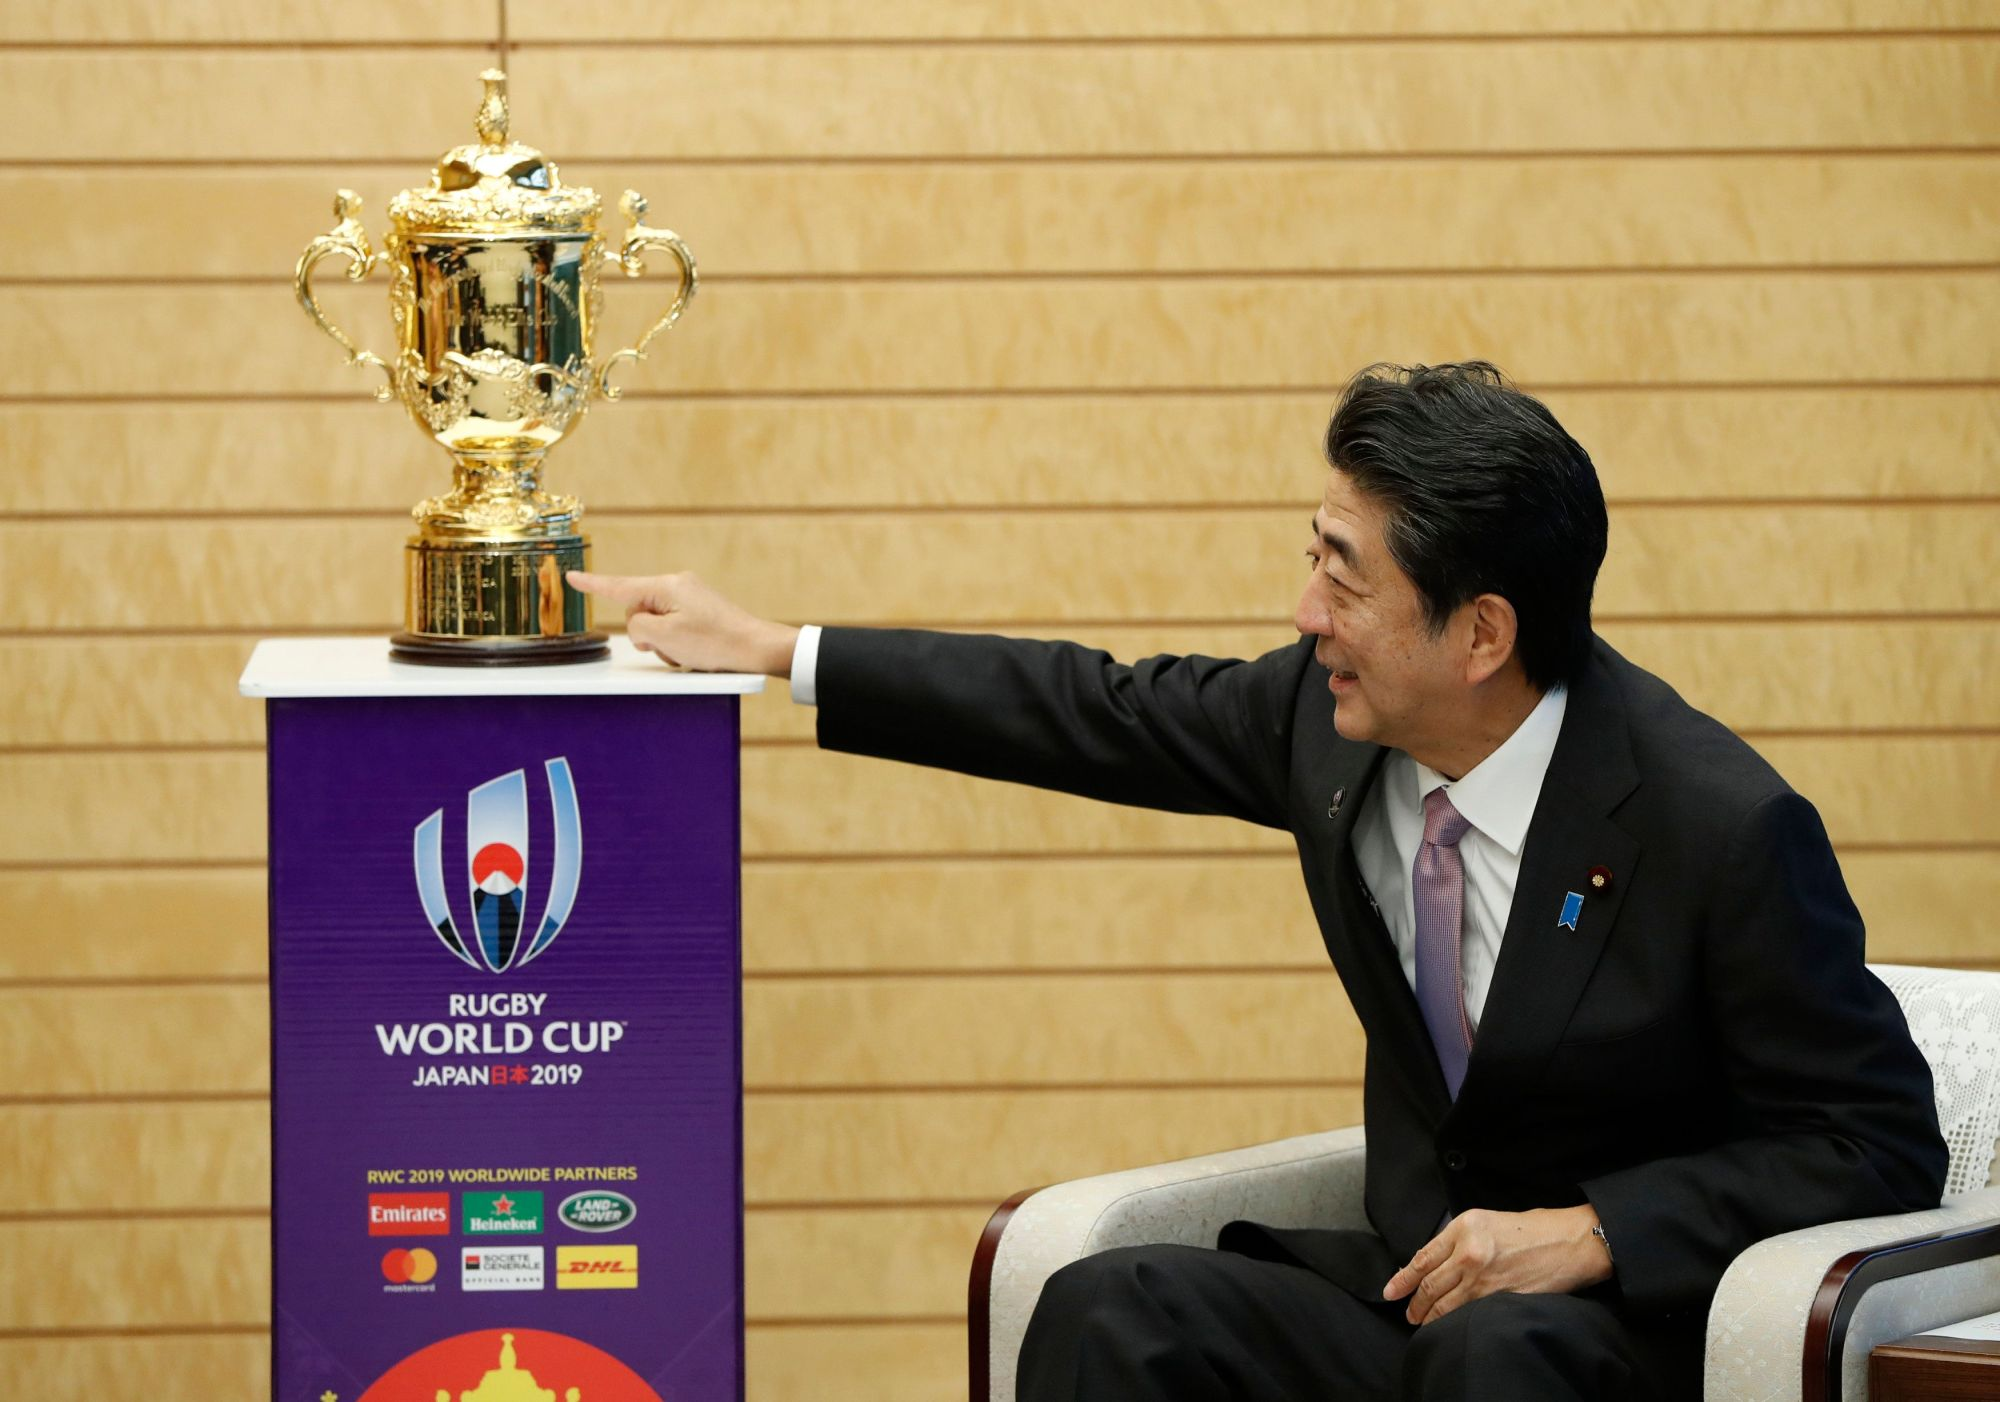 Prime Minister Shinzo Abe points at the Webb Ellis Trophy during a courtesy call by World Rugby officials at Abe's official residence in Tokyo on Thursday. | AFP-JIJI